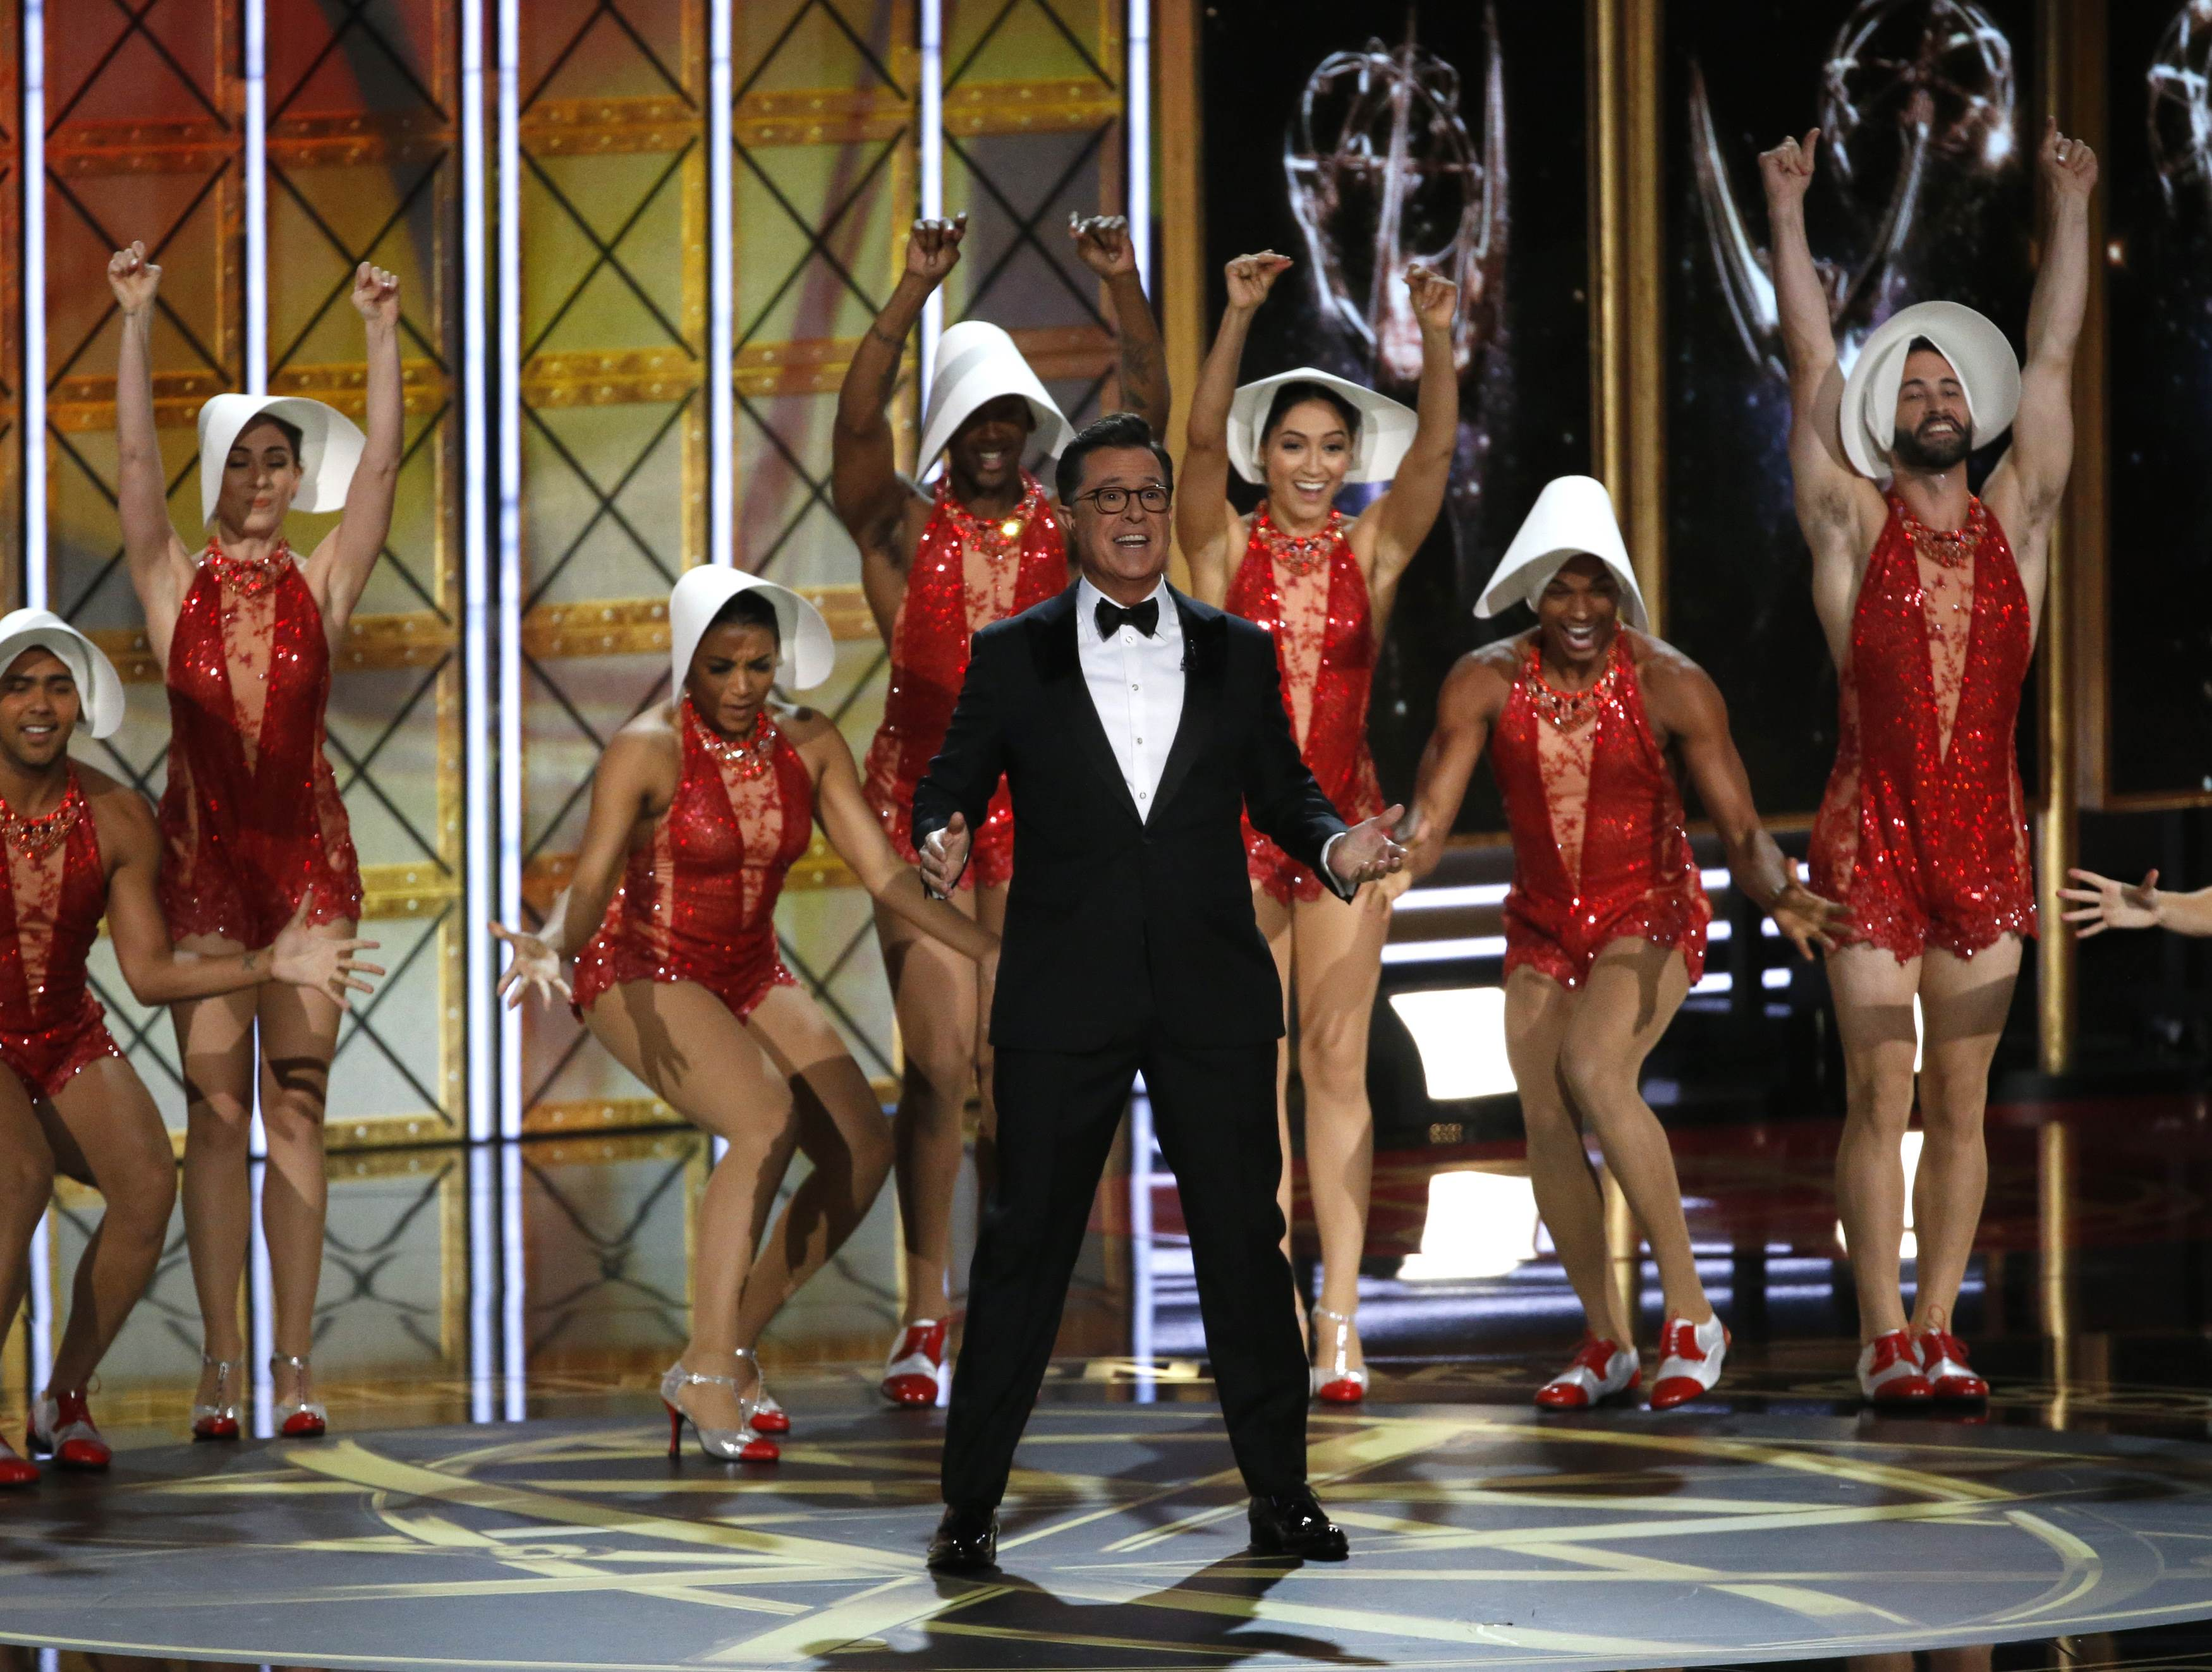 69th Primetime Emmy Awards – Show – Los Angeles, California, U.S., 17/09/2017 - Host Stephen Colbert opens the show. REUTERS/Mario Anzuoni